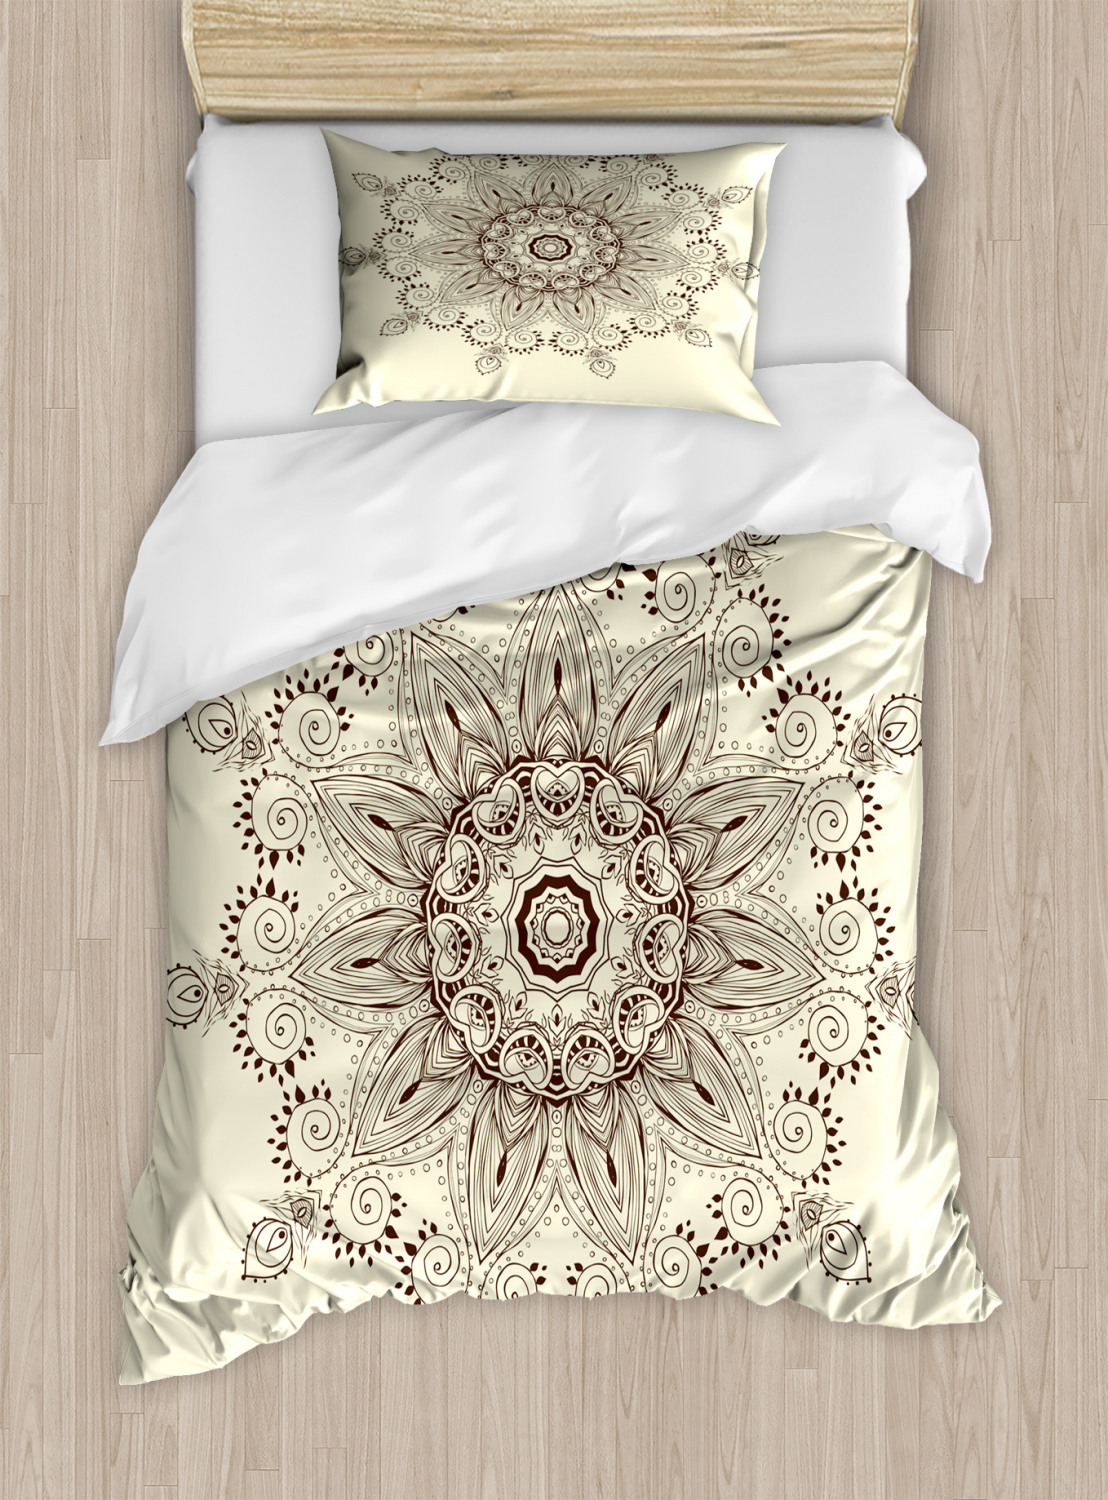 Lotus Flower Duvet Cover Set Twin Queen King Sizes With Pillow Shams